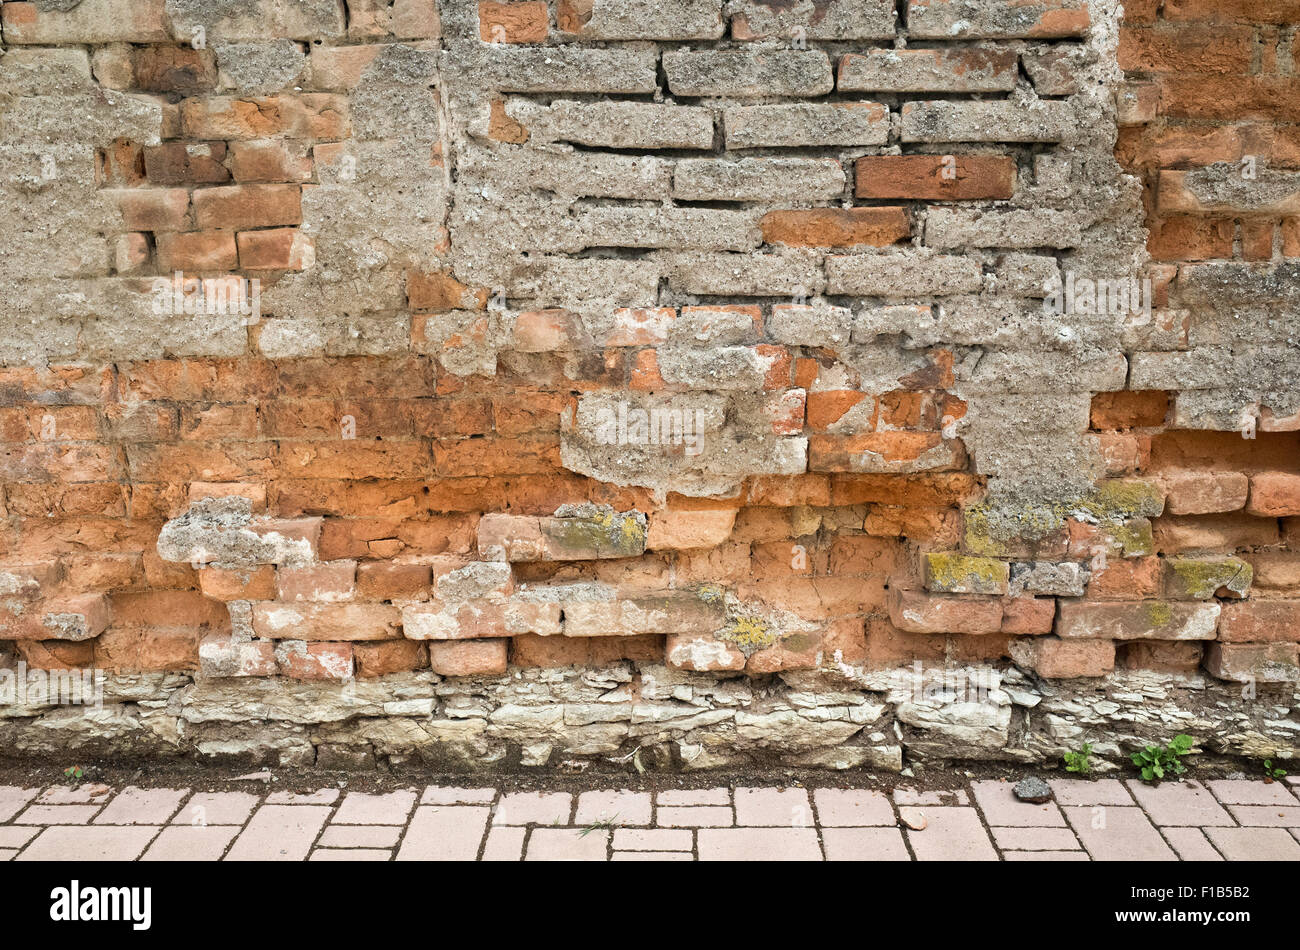 distressed and damaged wall - Stock Image